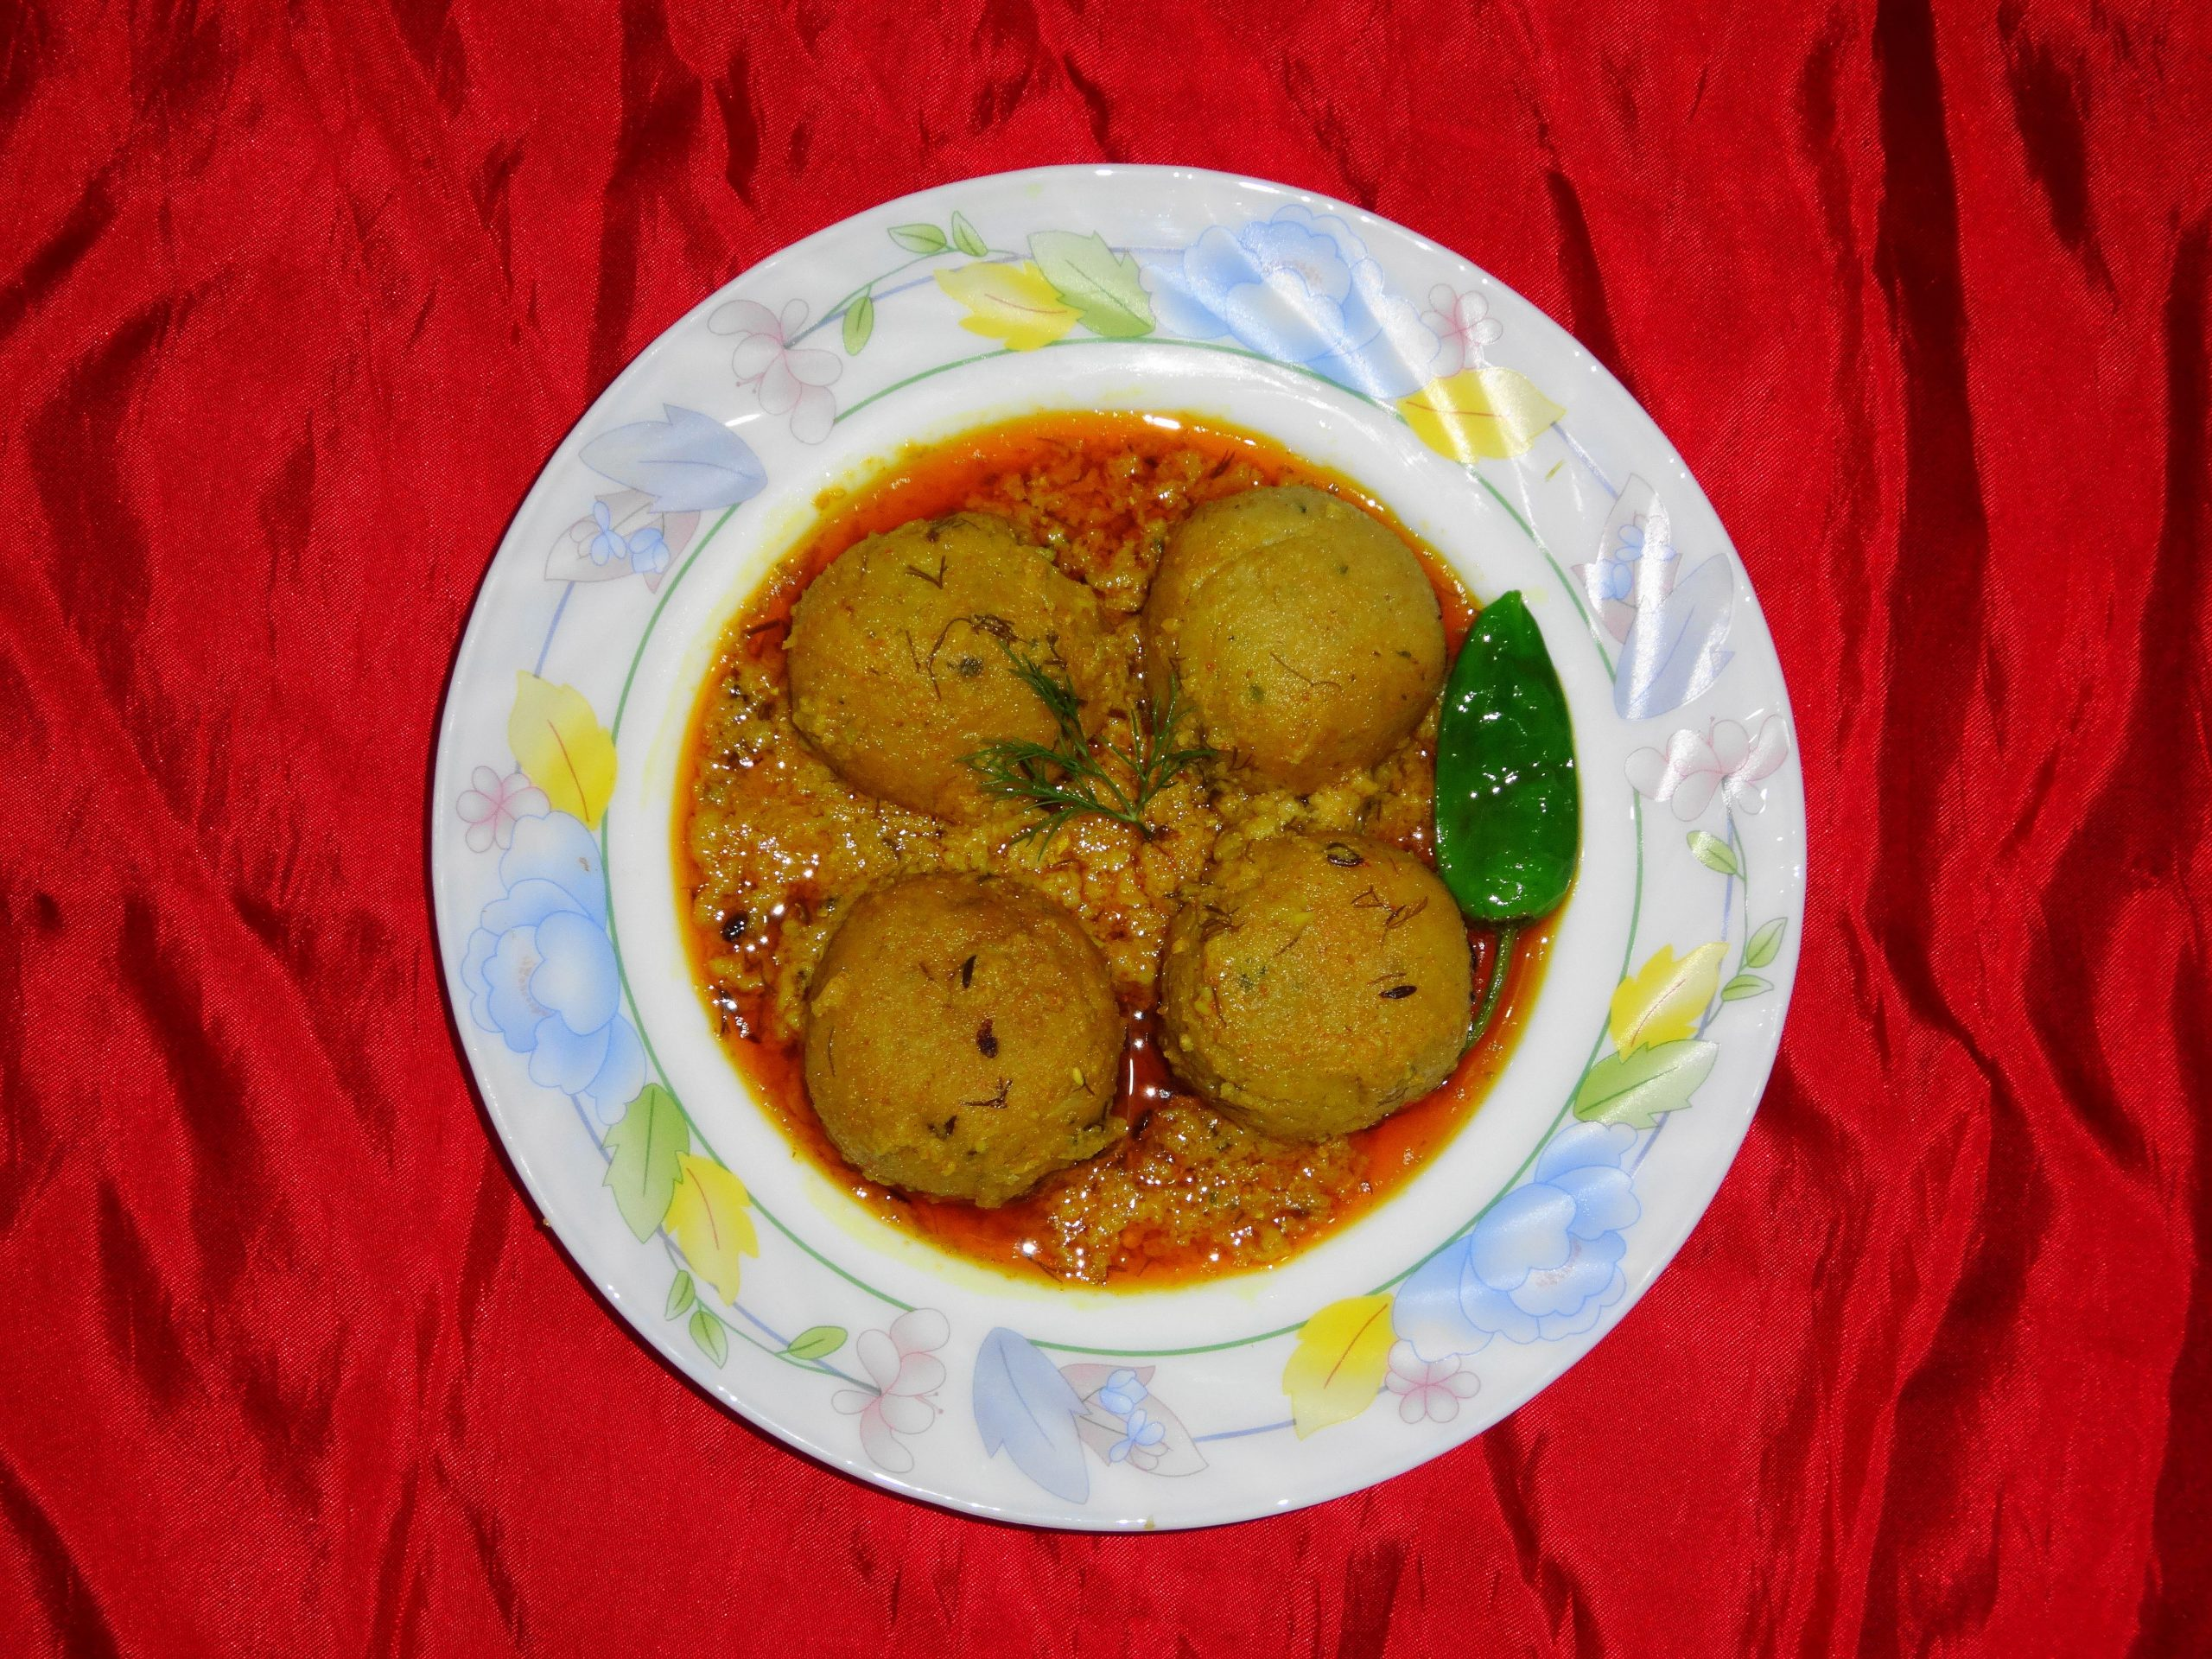 File:Fish Kofta..JPG - Wikimedia Commons